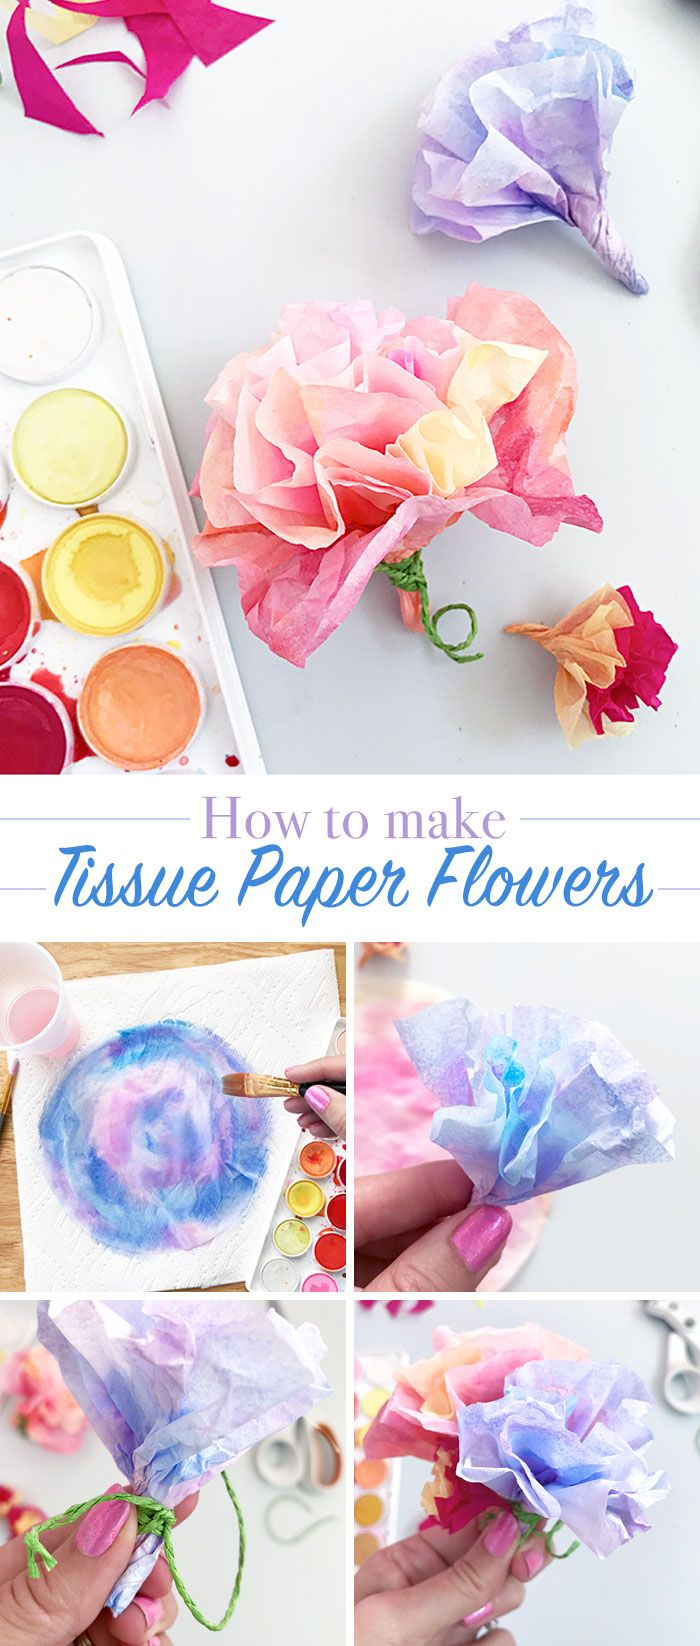 Make Easy Tissue Paper Flowers The Group Board On Pinterest